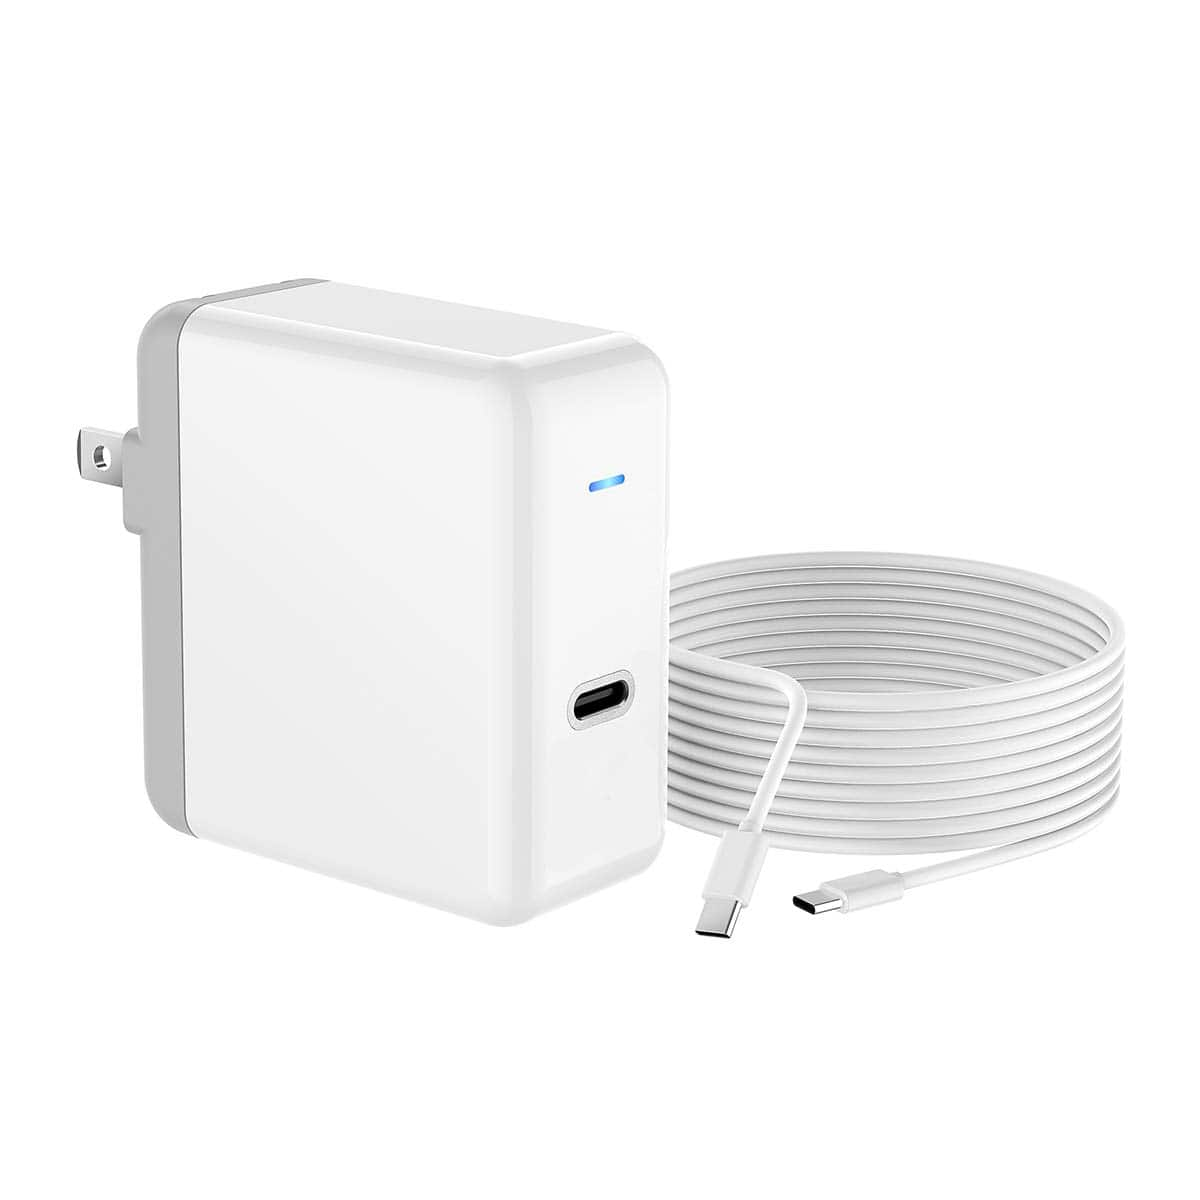 Onforu 61W USB C Power Adapter, Power Delivery Fast Wall Charger $14.99